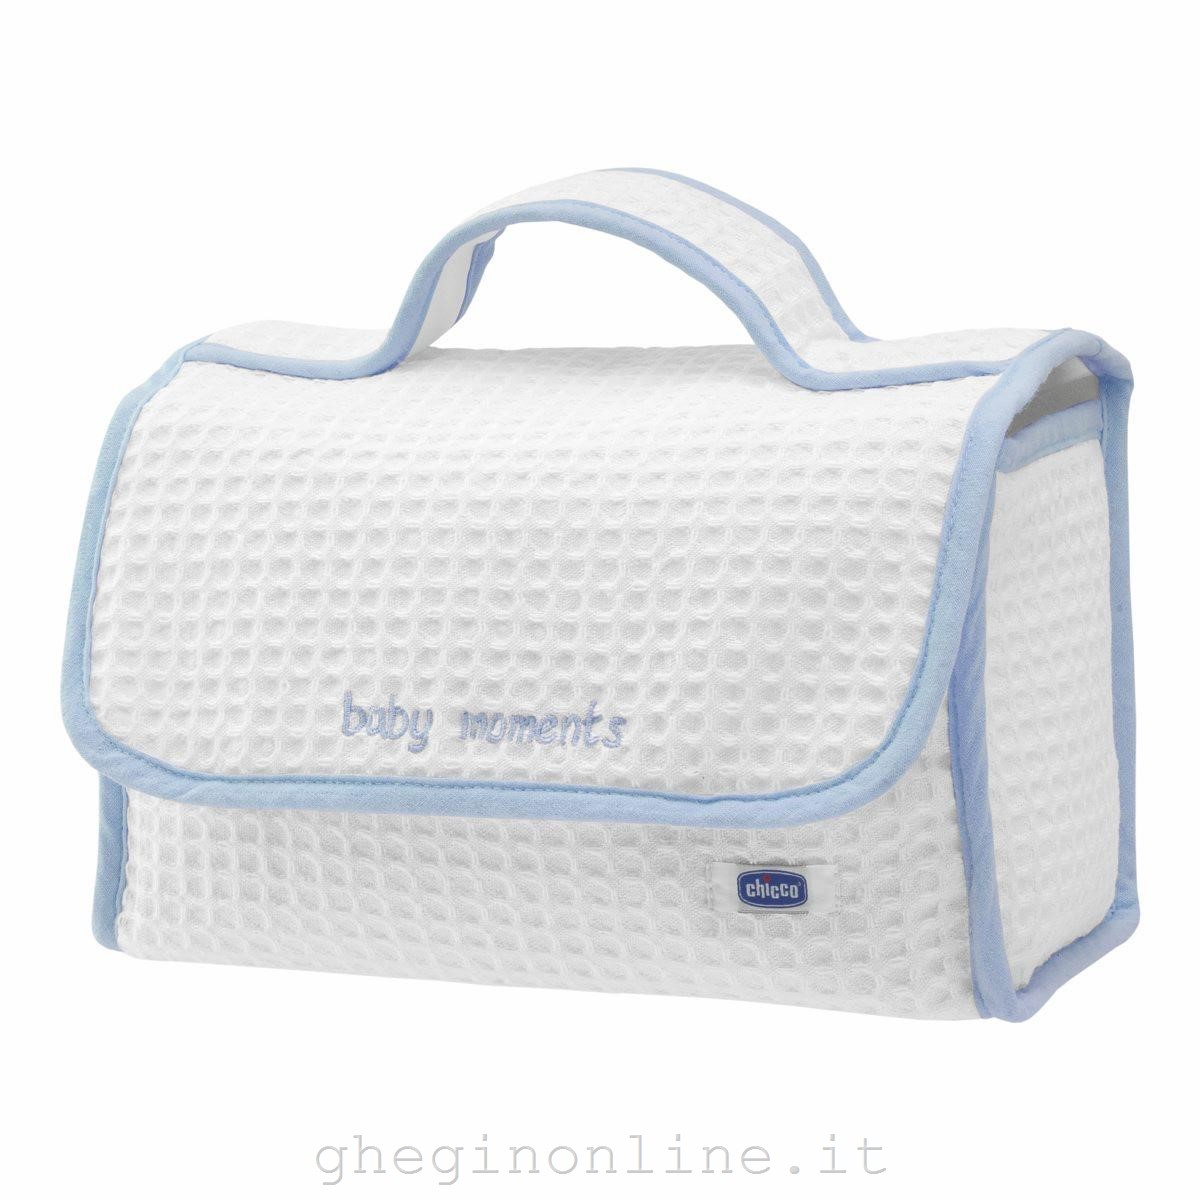 CHICCO 8033828710280Chicco Baby Moments Set, Blu